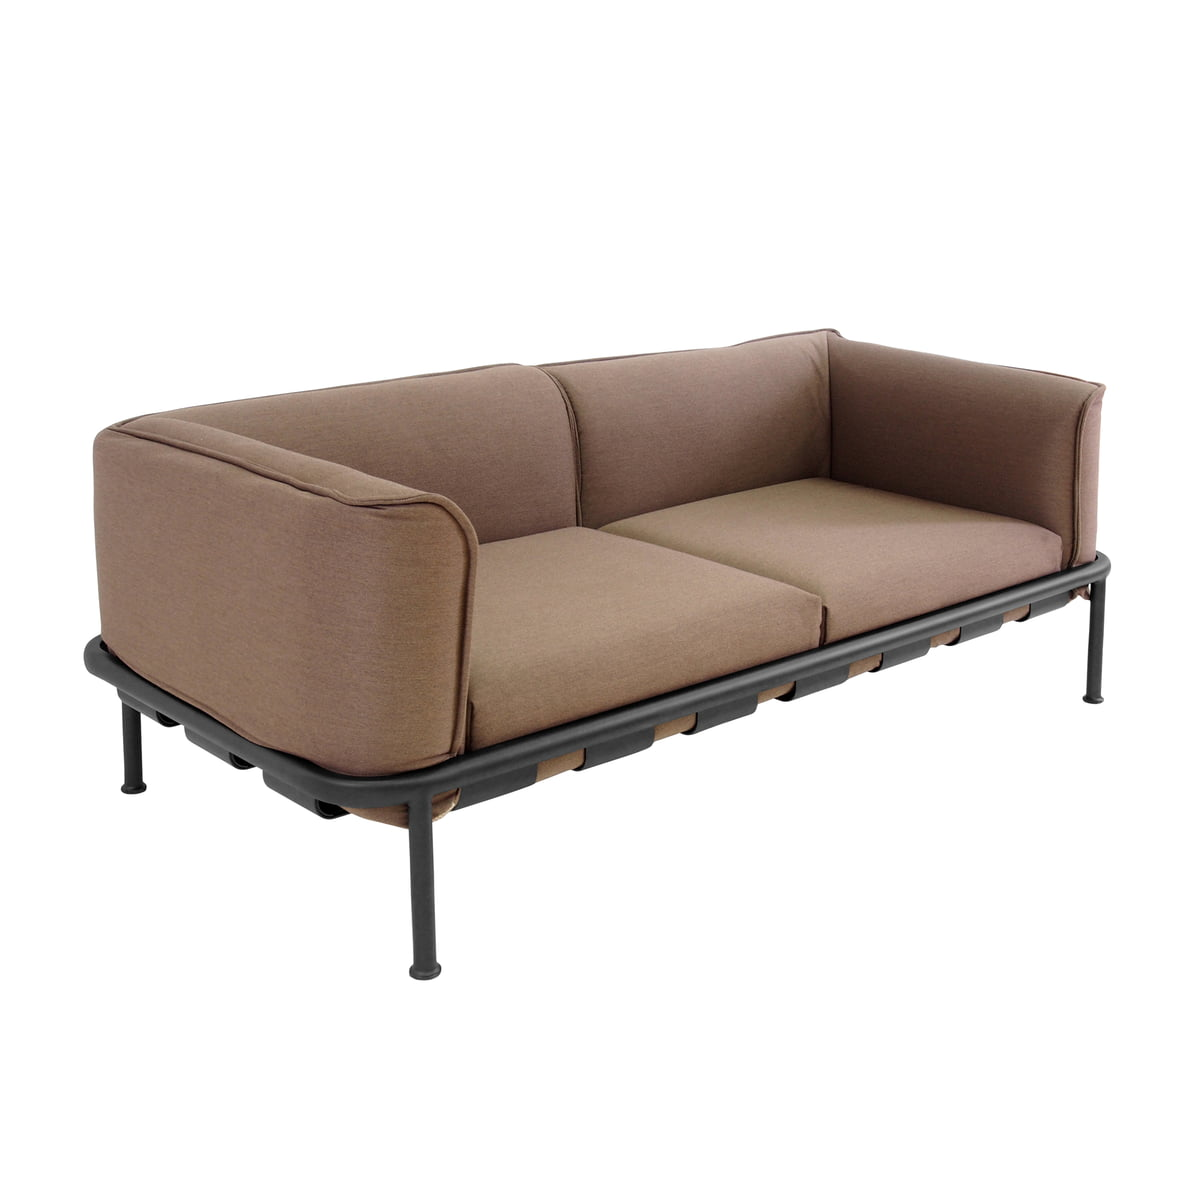 Dock 2 Seater Sofa By Emu In Black With Brown Cushion.